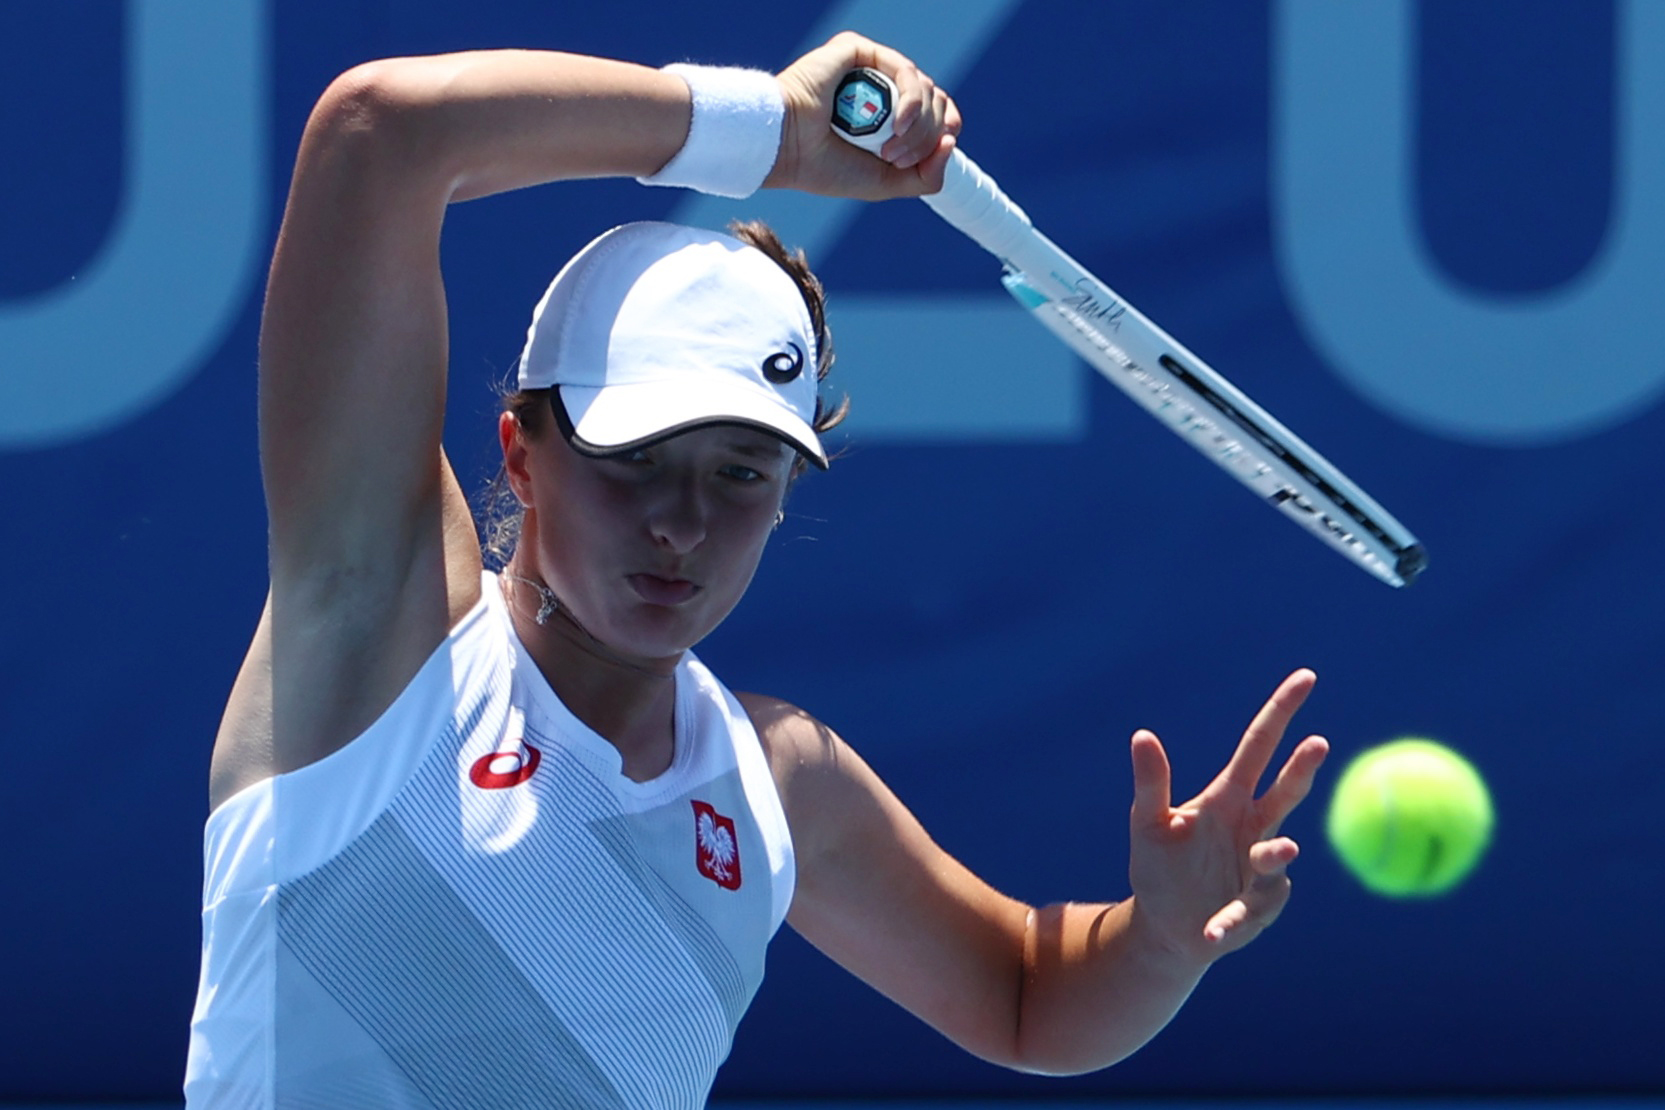 Tokyo 2020 Olympics - Tennis - Women's Singles - Round 1 - Ariake Tennis Park - Tokyo, Japan - July 24, 2021. Iga Swiatek of Poland in action during her first round match against Mona Barthel of Germany REUTERS/Mike Segar